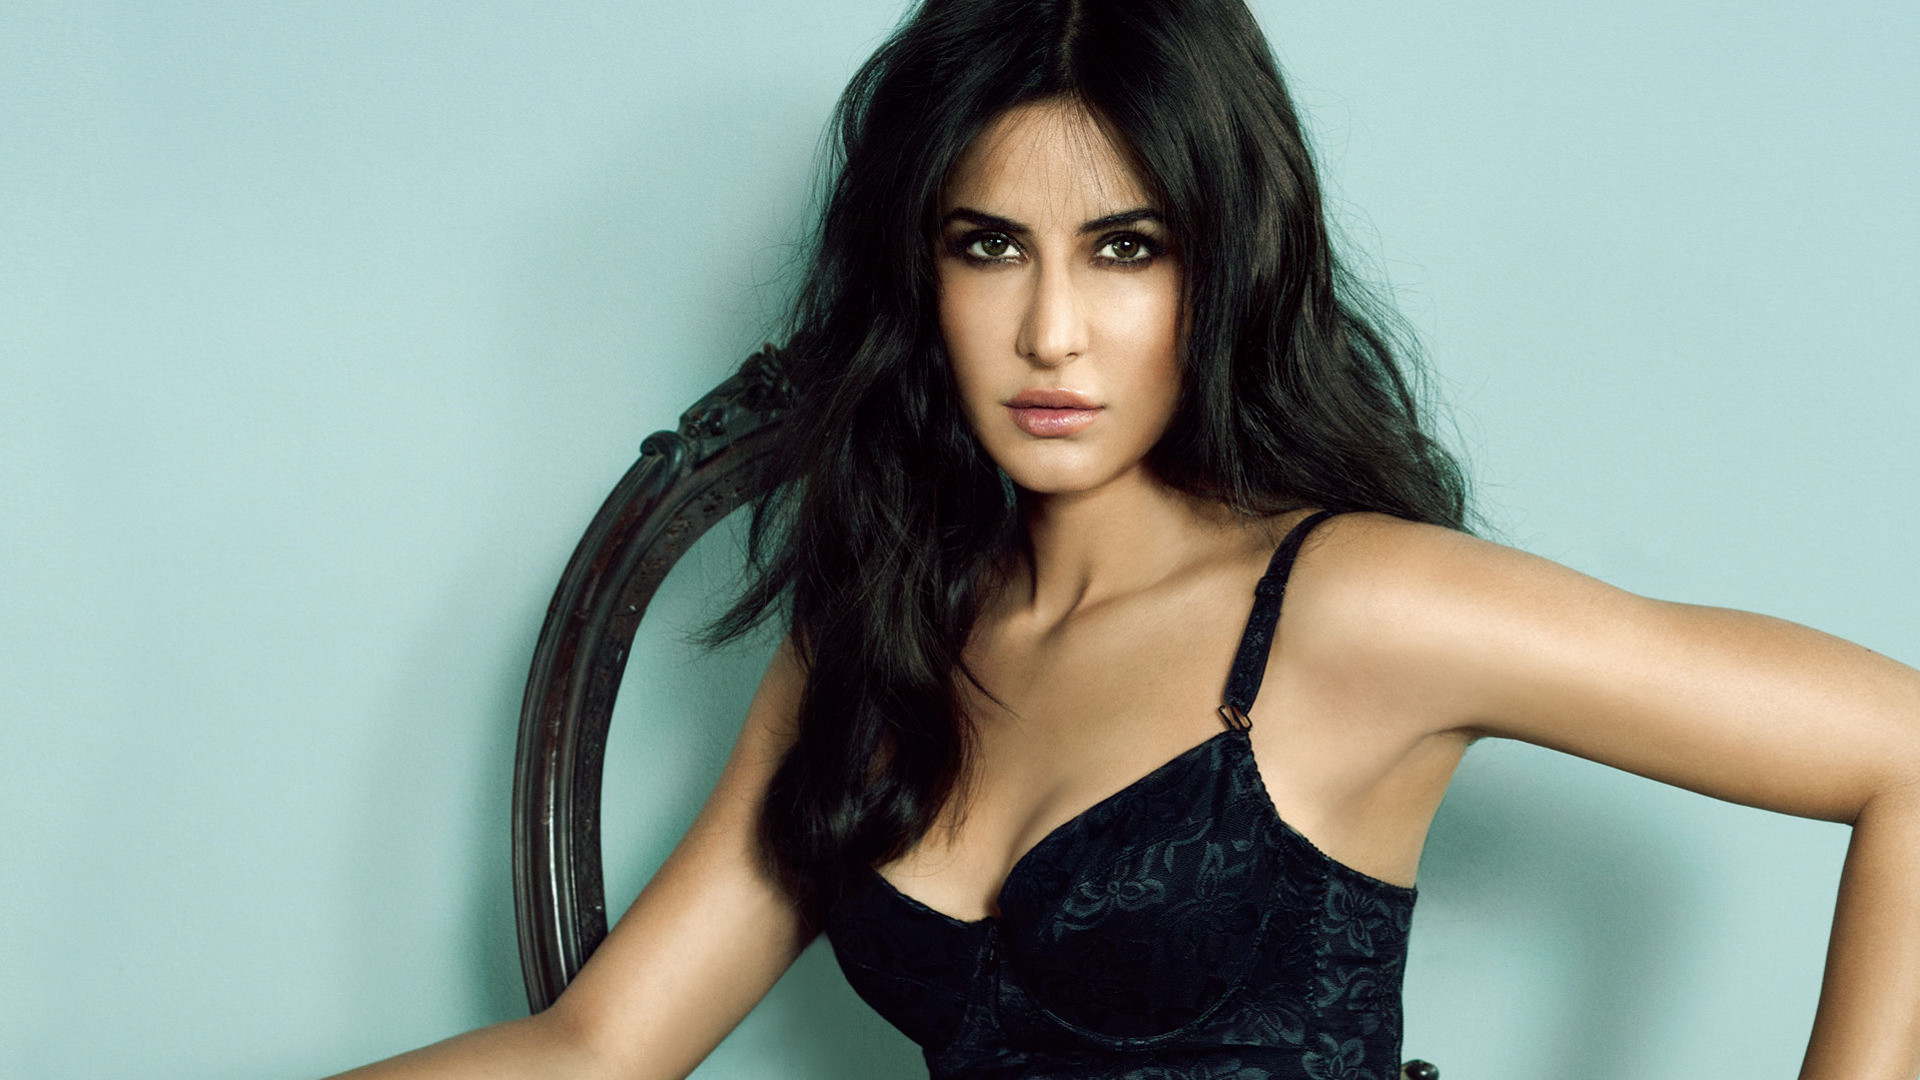 hd wallpapers for bollywood actress (74+ pictures)